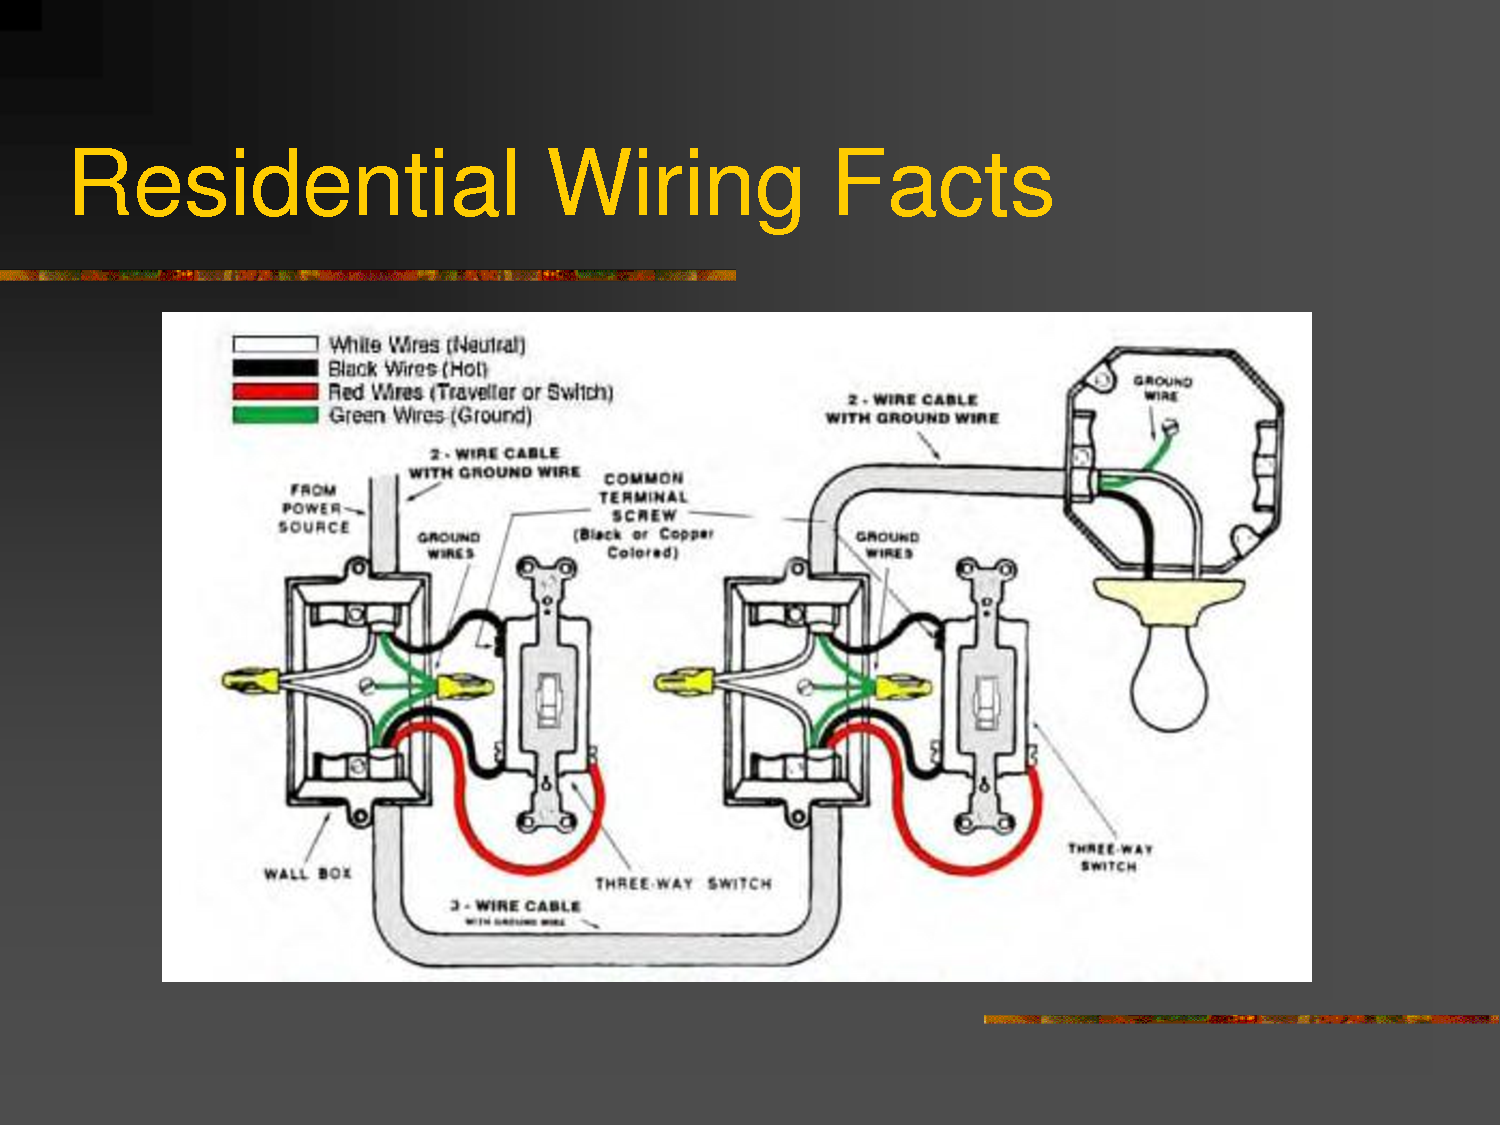 4 Best Images Of Residential Wiring Diagrams House Electrical Wire On Diagram For Electric Fence